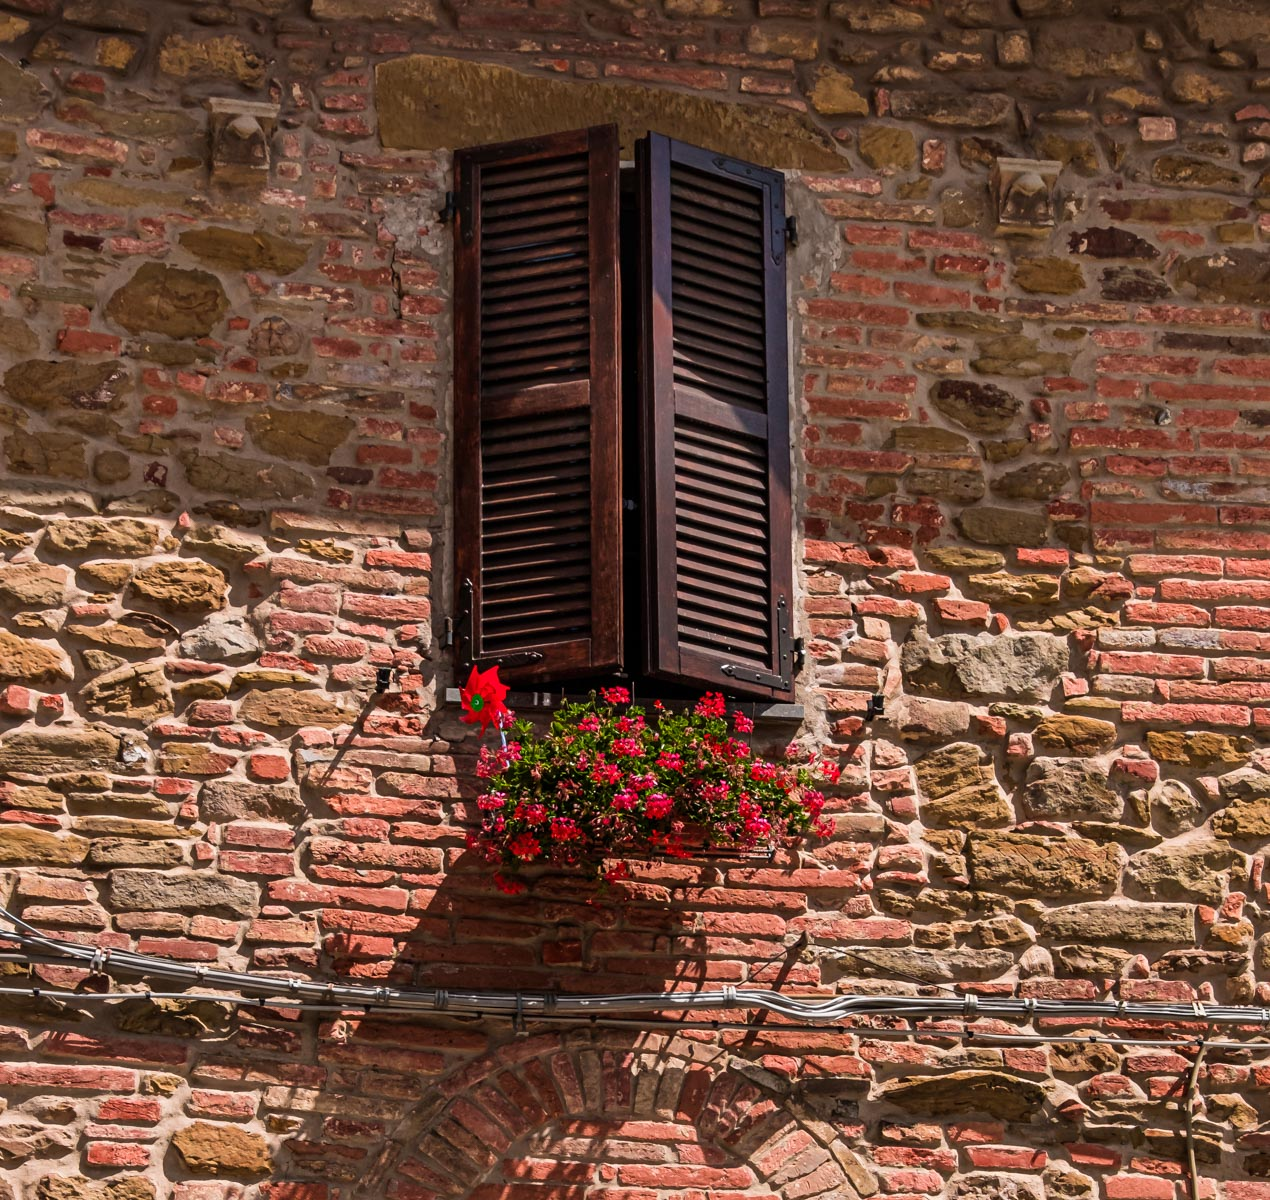 Panicale, Italy.  Photo by Barry Schwartz